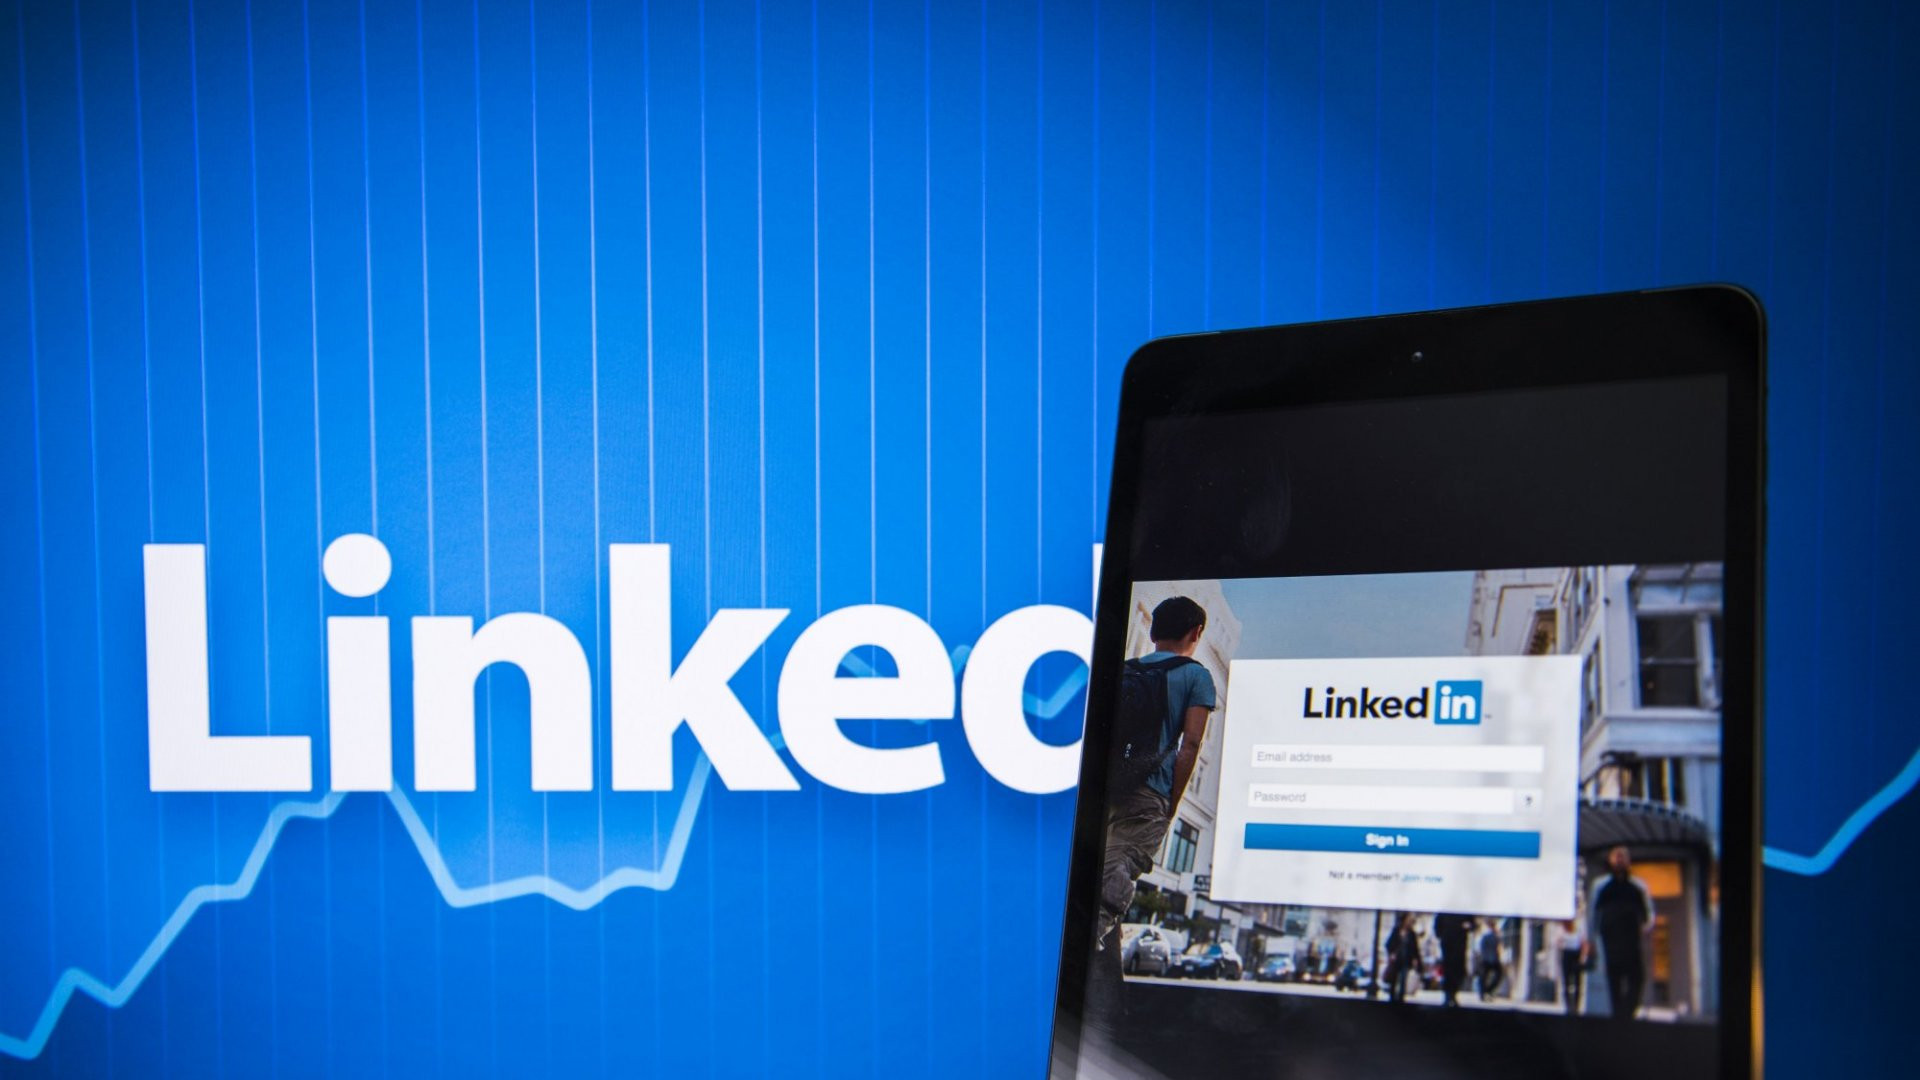 New LinkedIn Data Reveals the 10 U.S. Jobs With the Largest Growth Rate